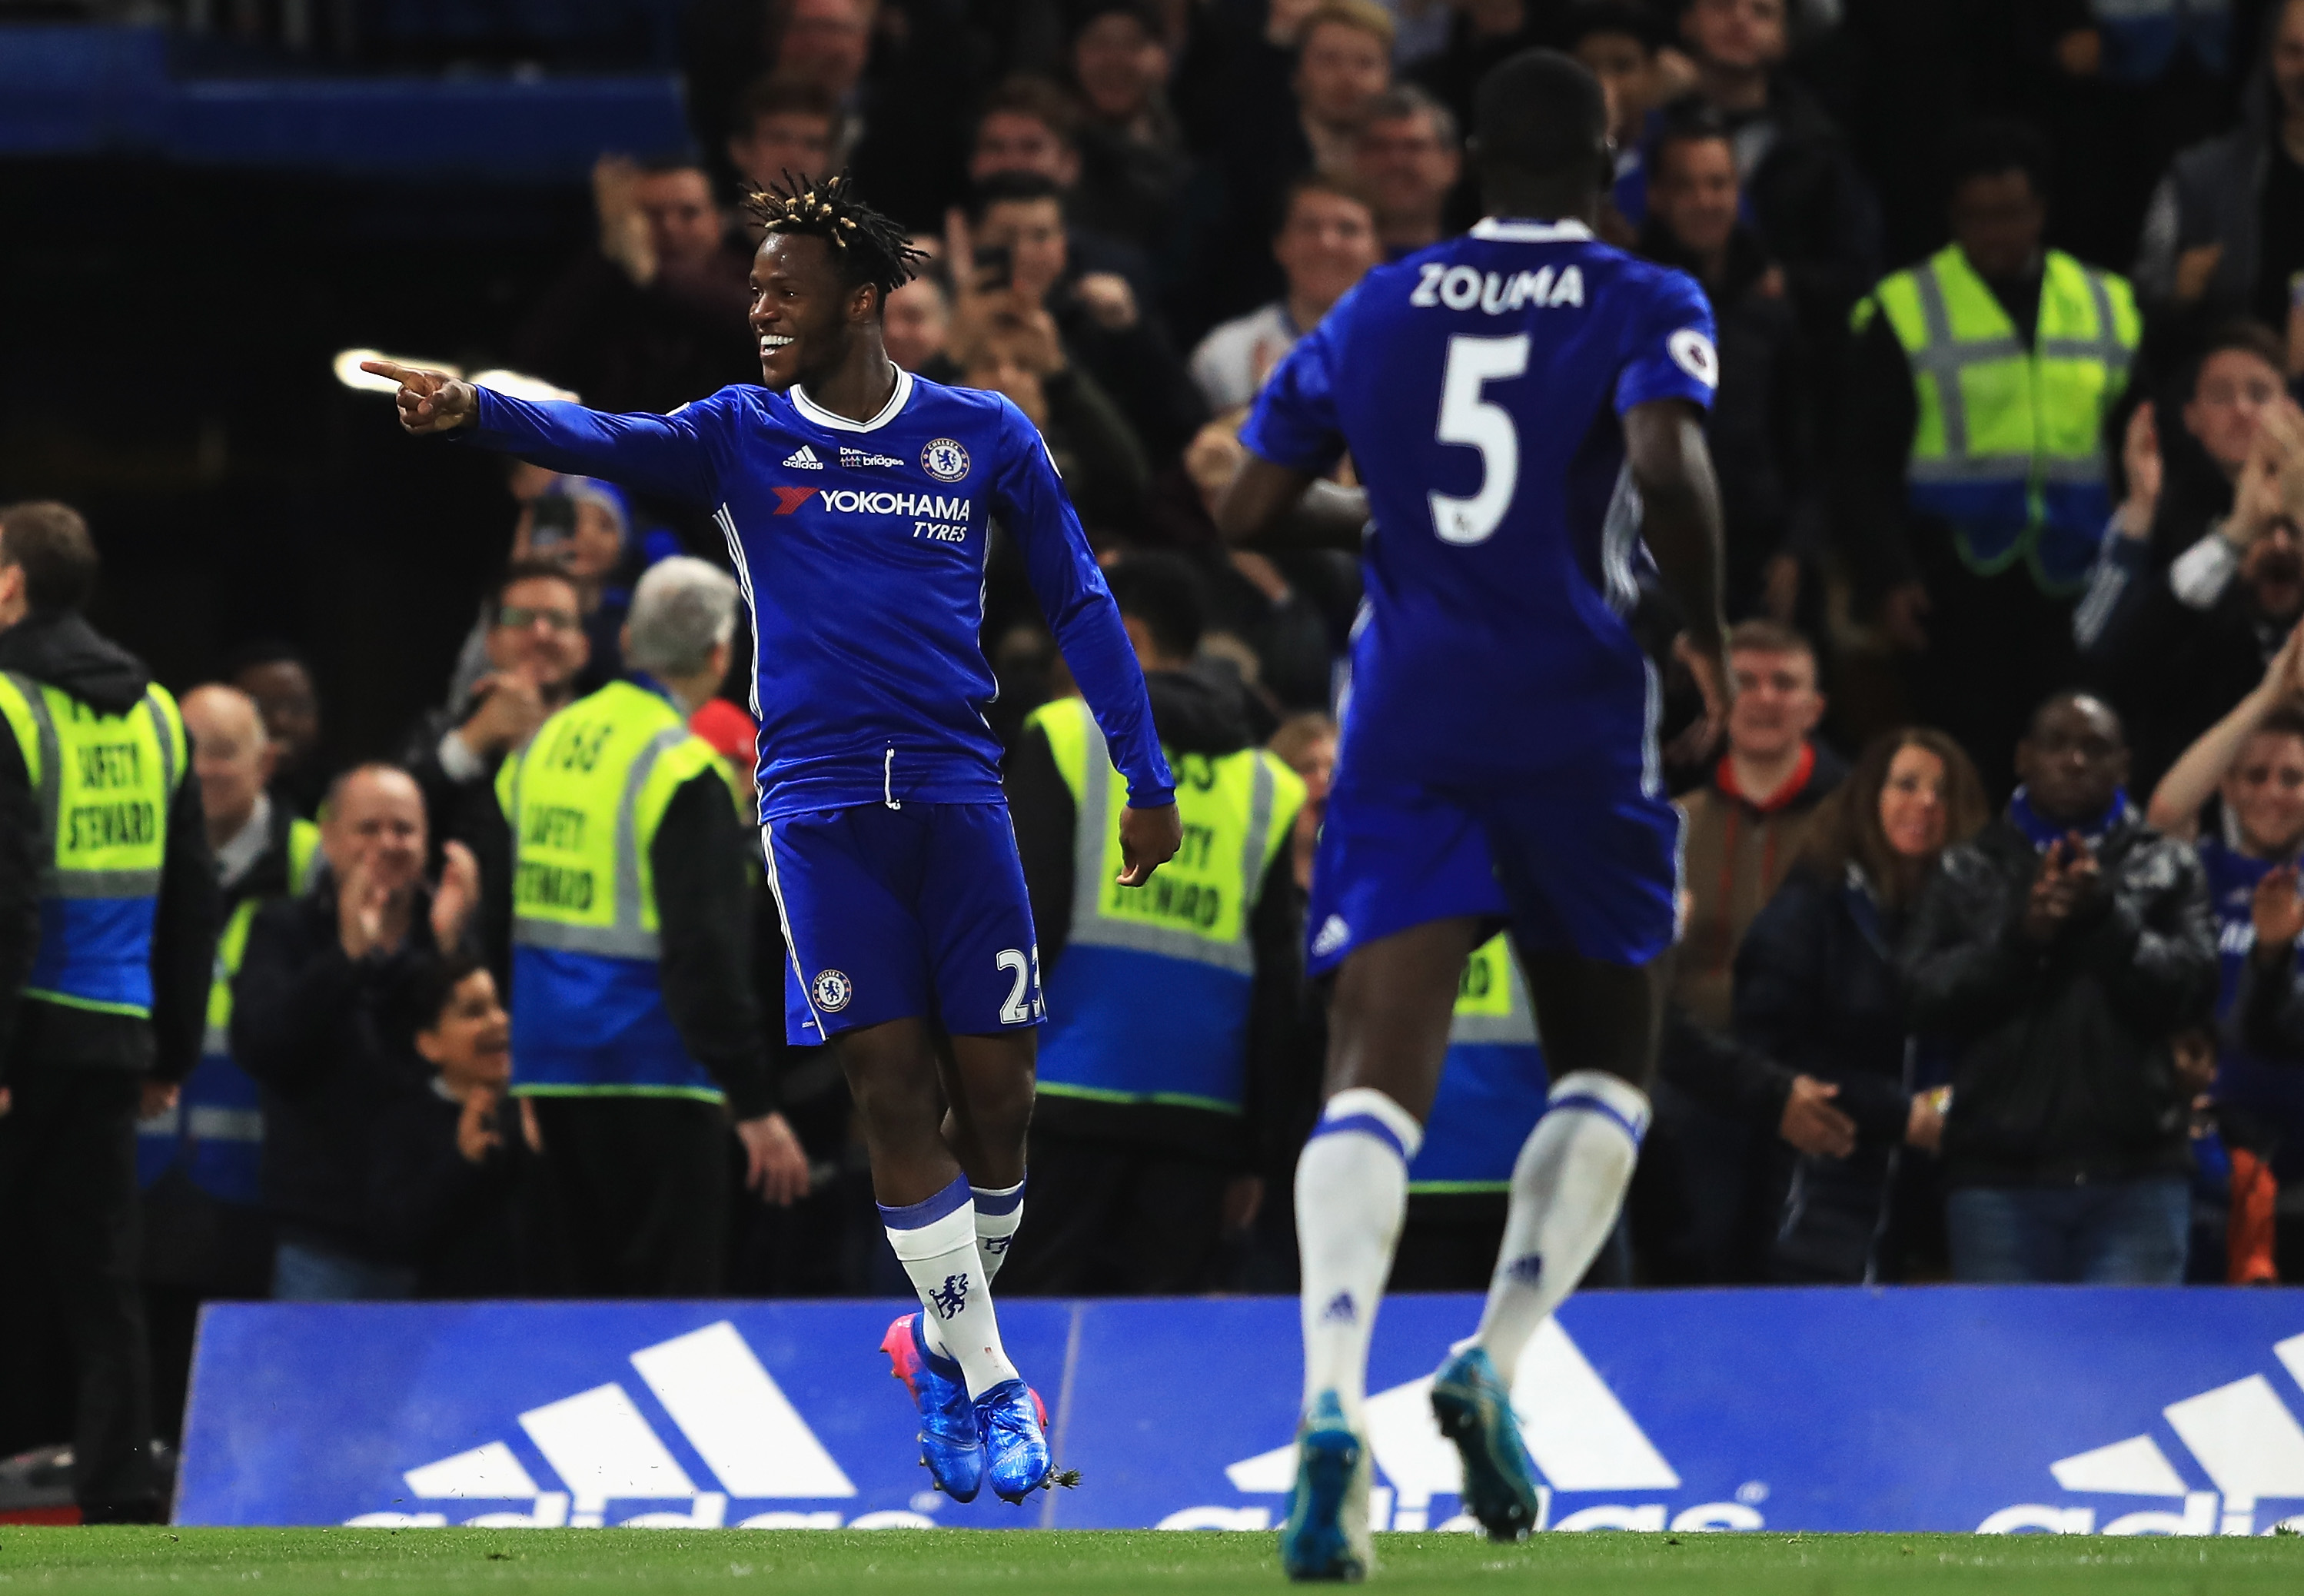 Chelsea 4-3 Watford, Premier League